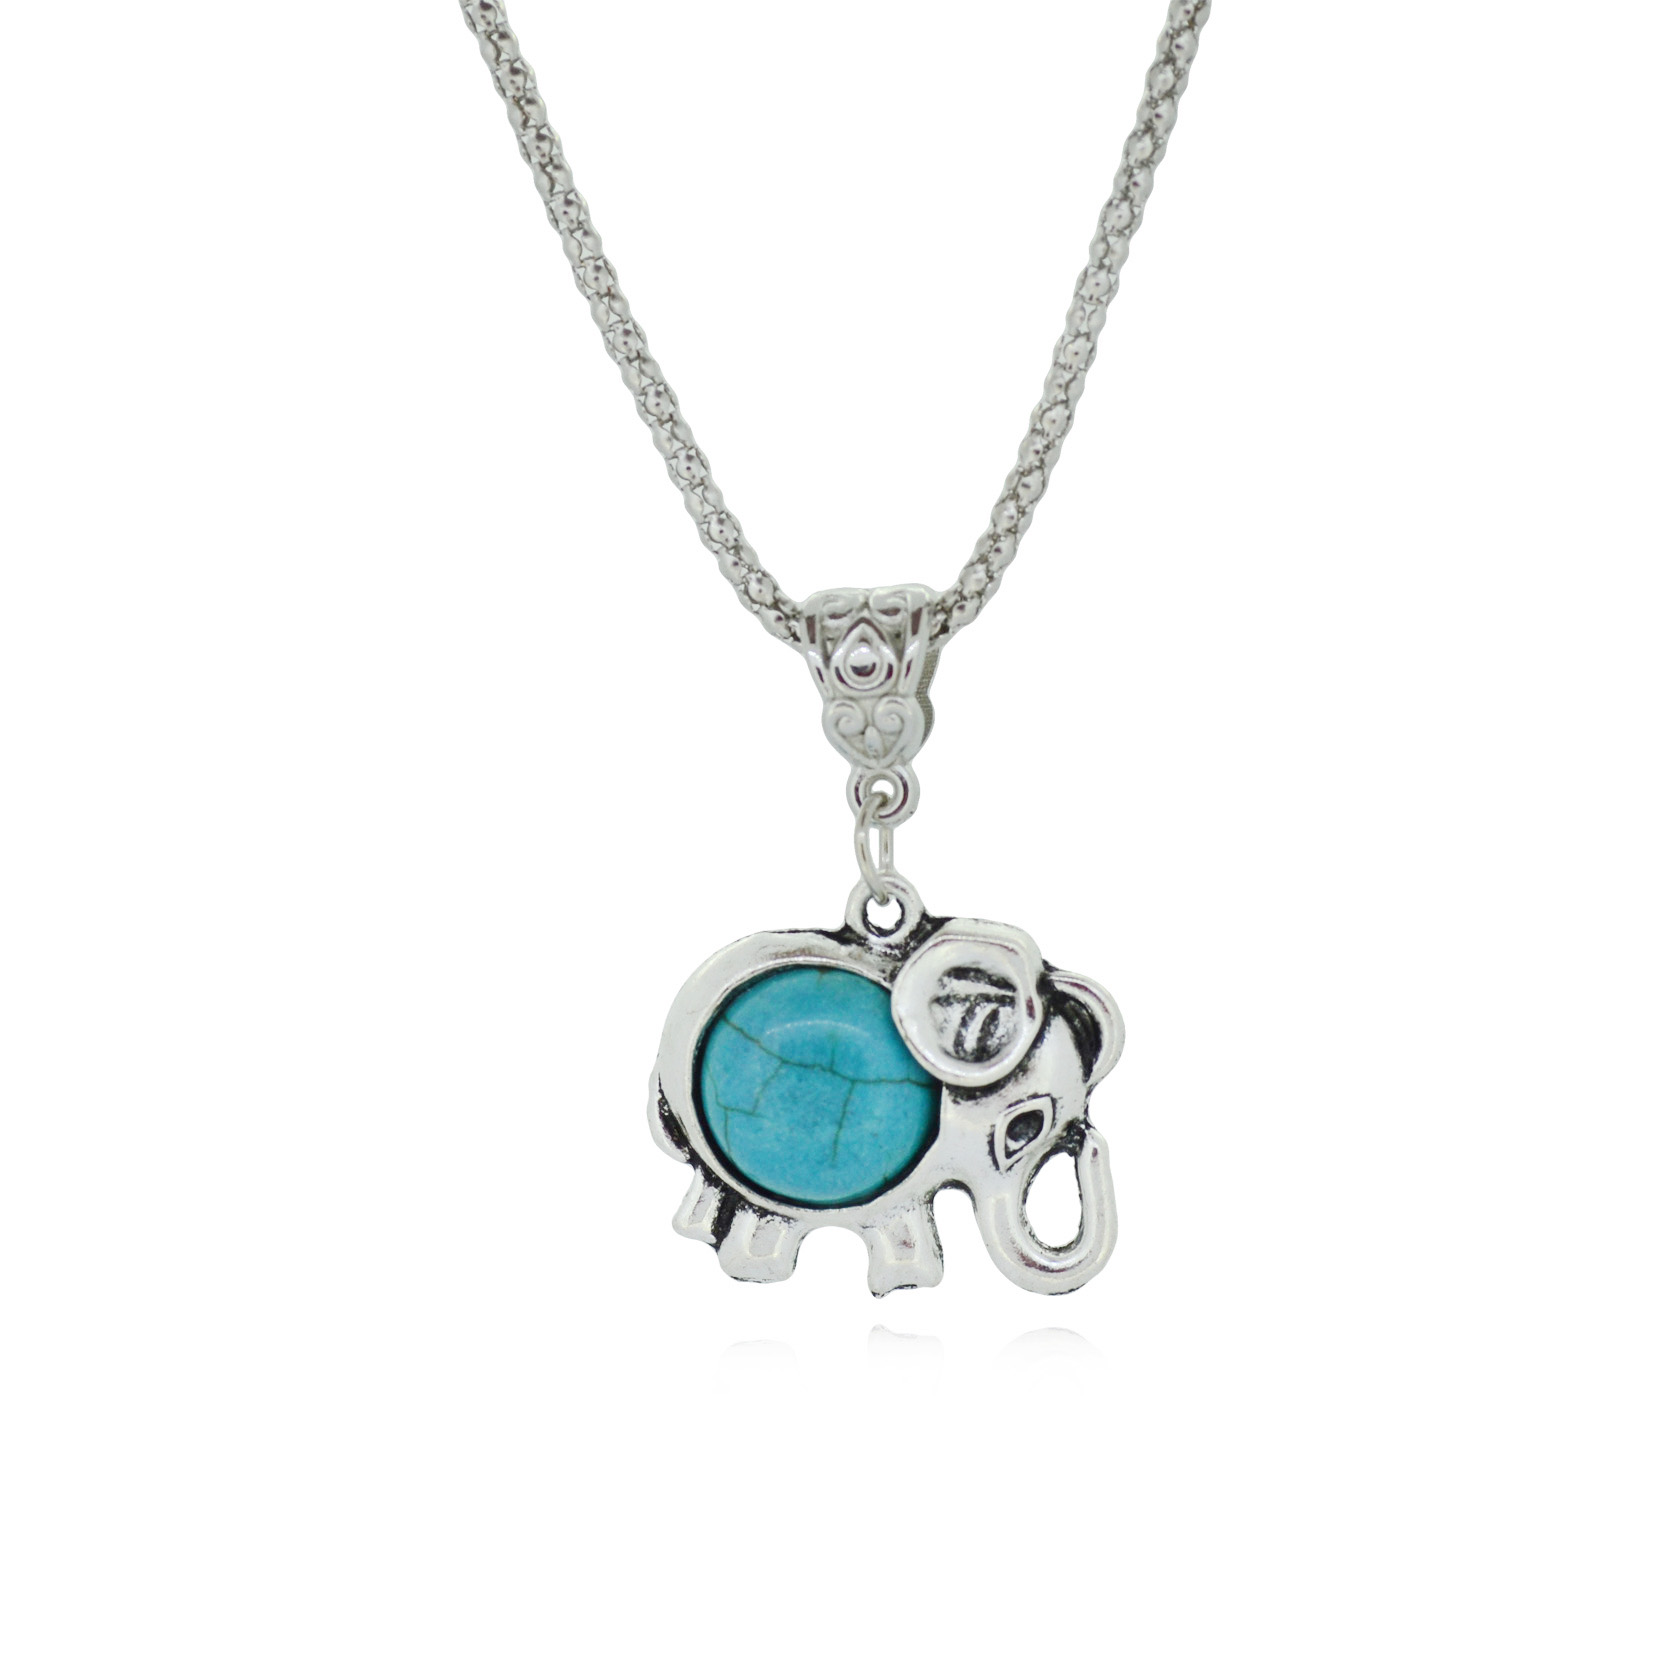 Trendy Vintage Metal Elephant Necklace